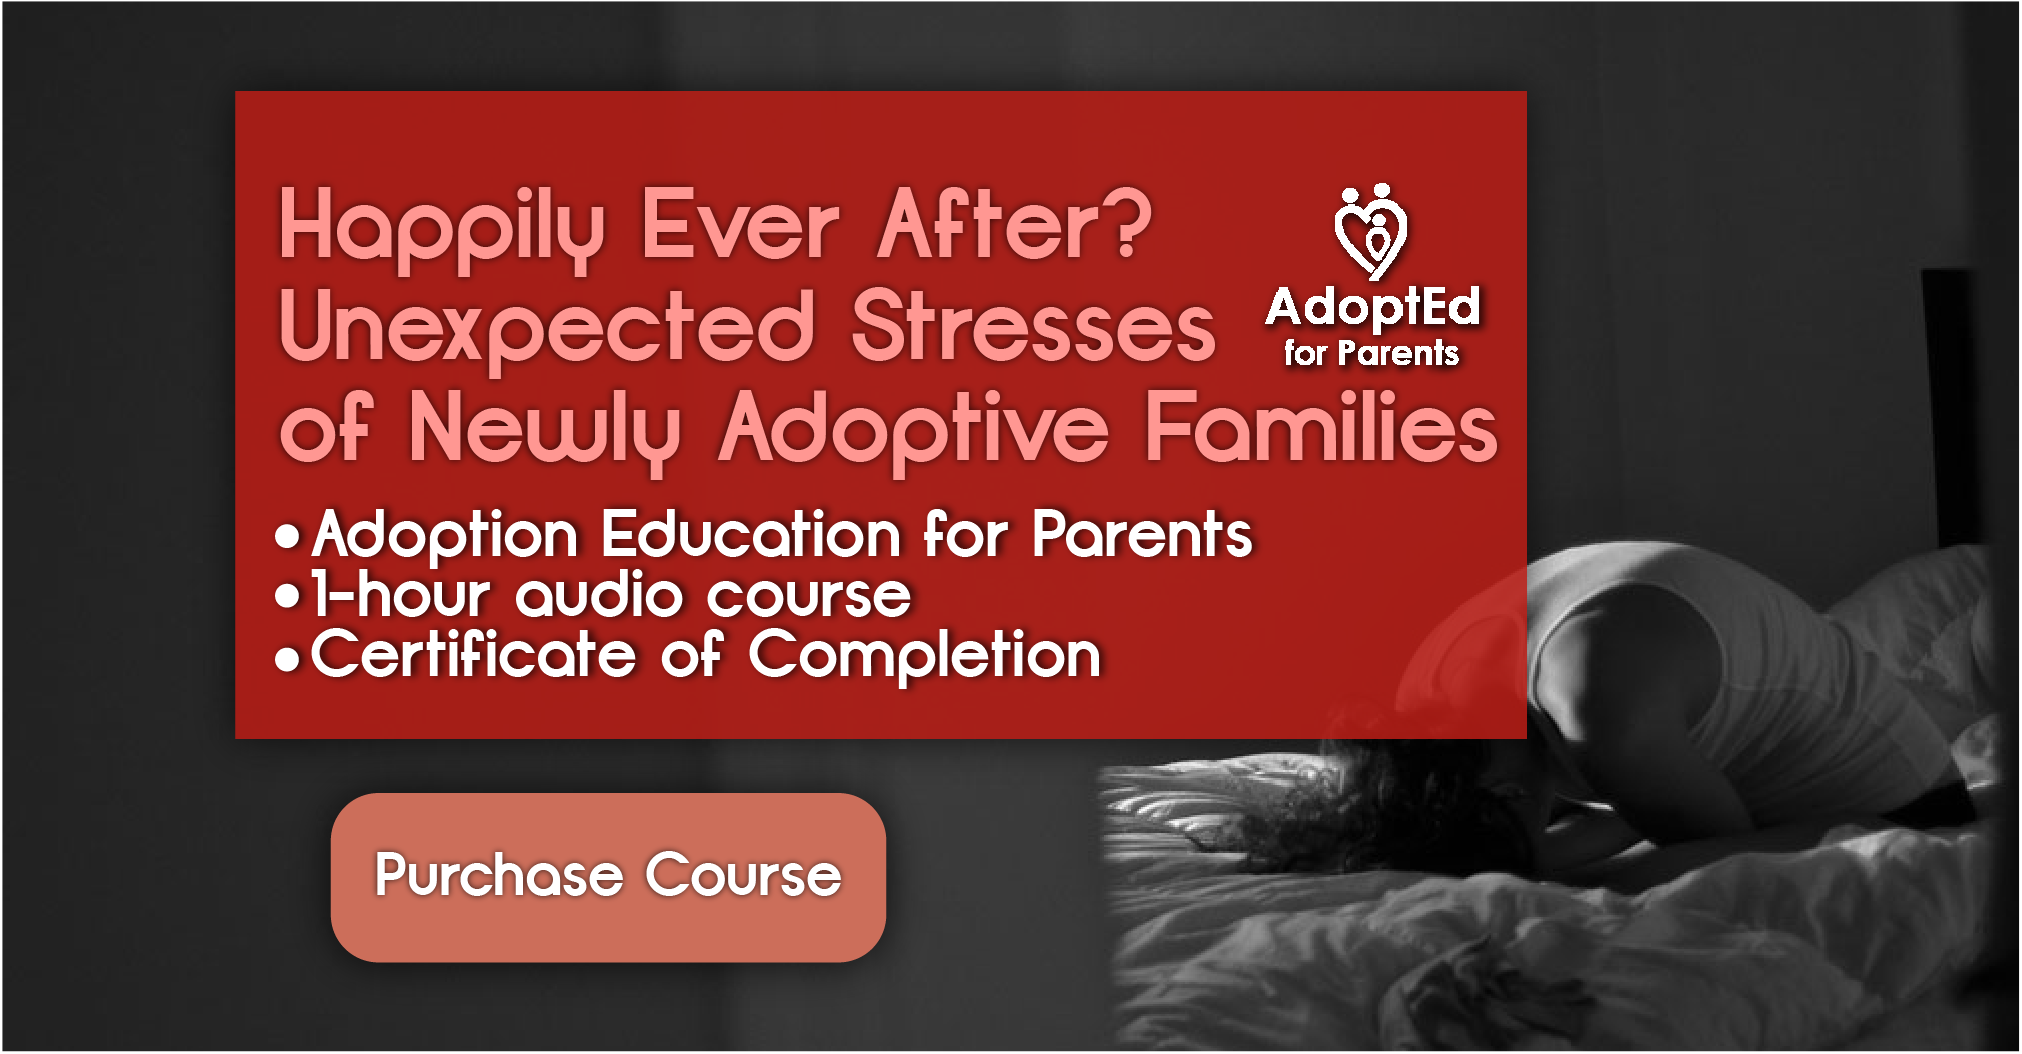 Discussion on this topic: This Is What Adoption Feels Like, this-is-what-adoption-feels-like/